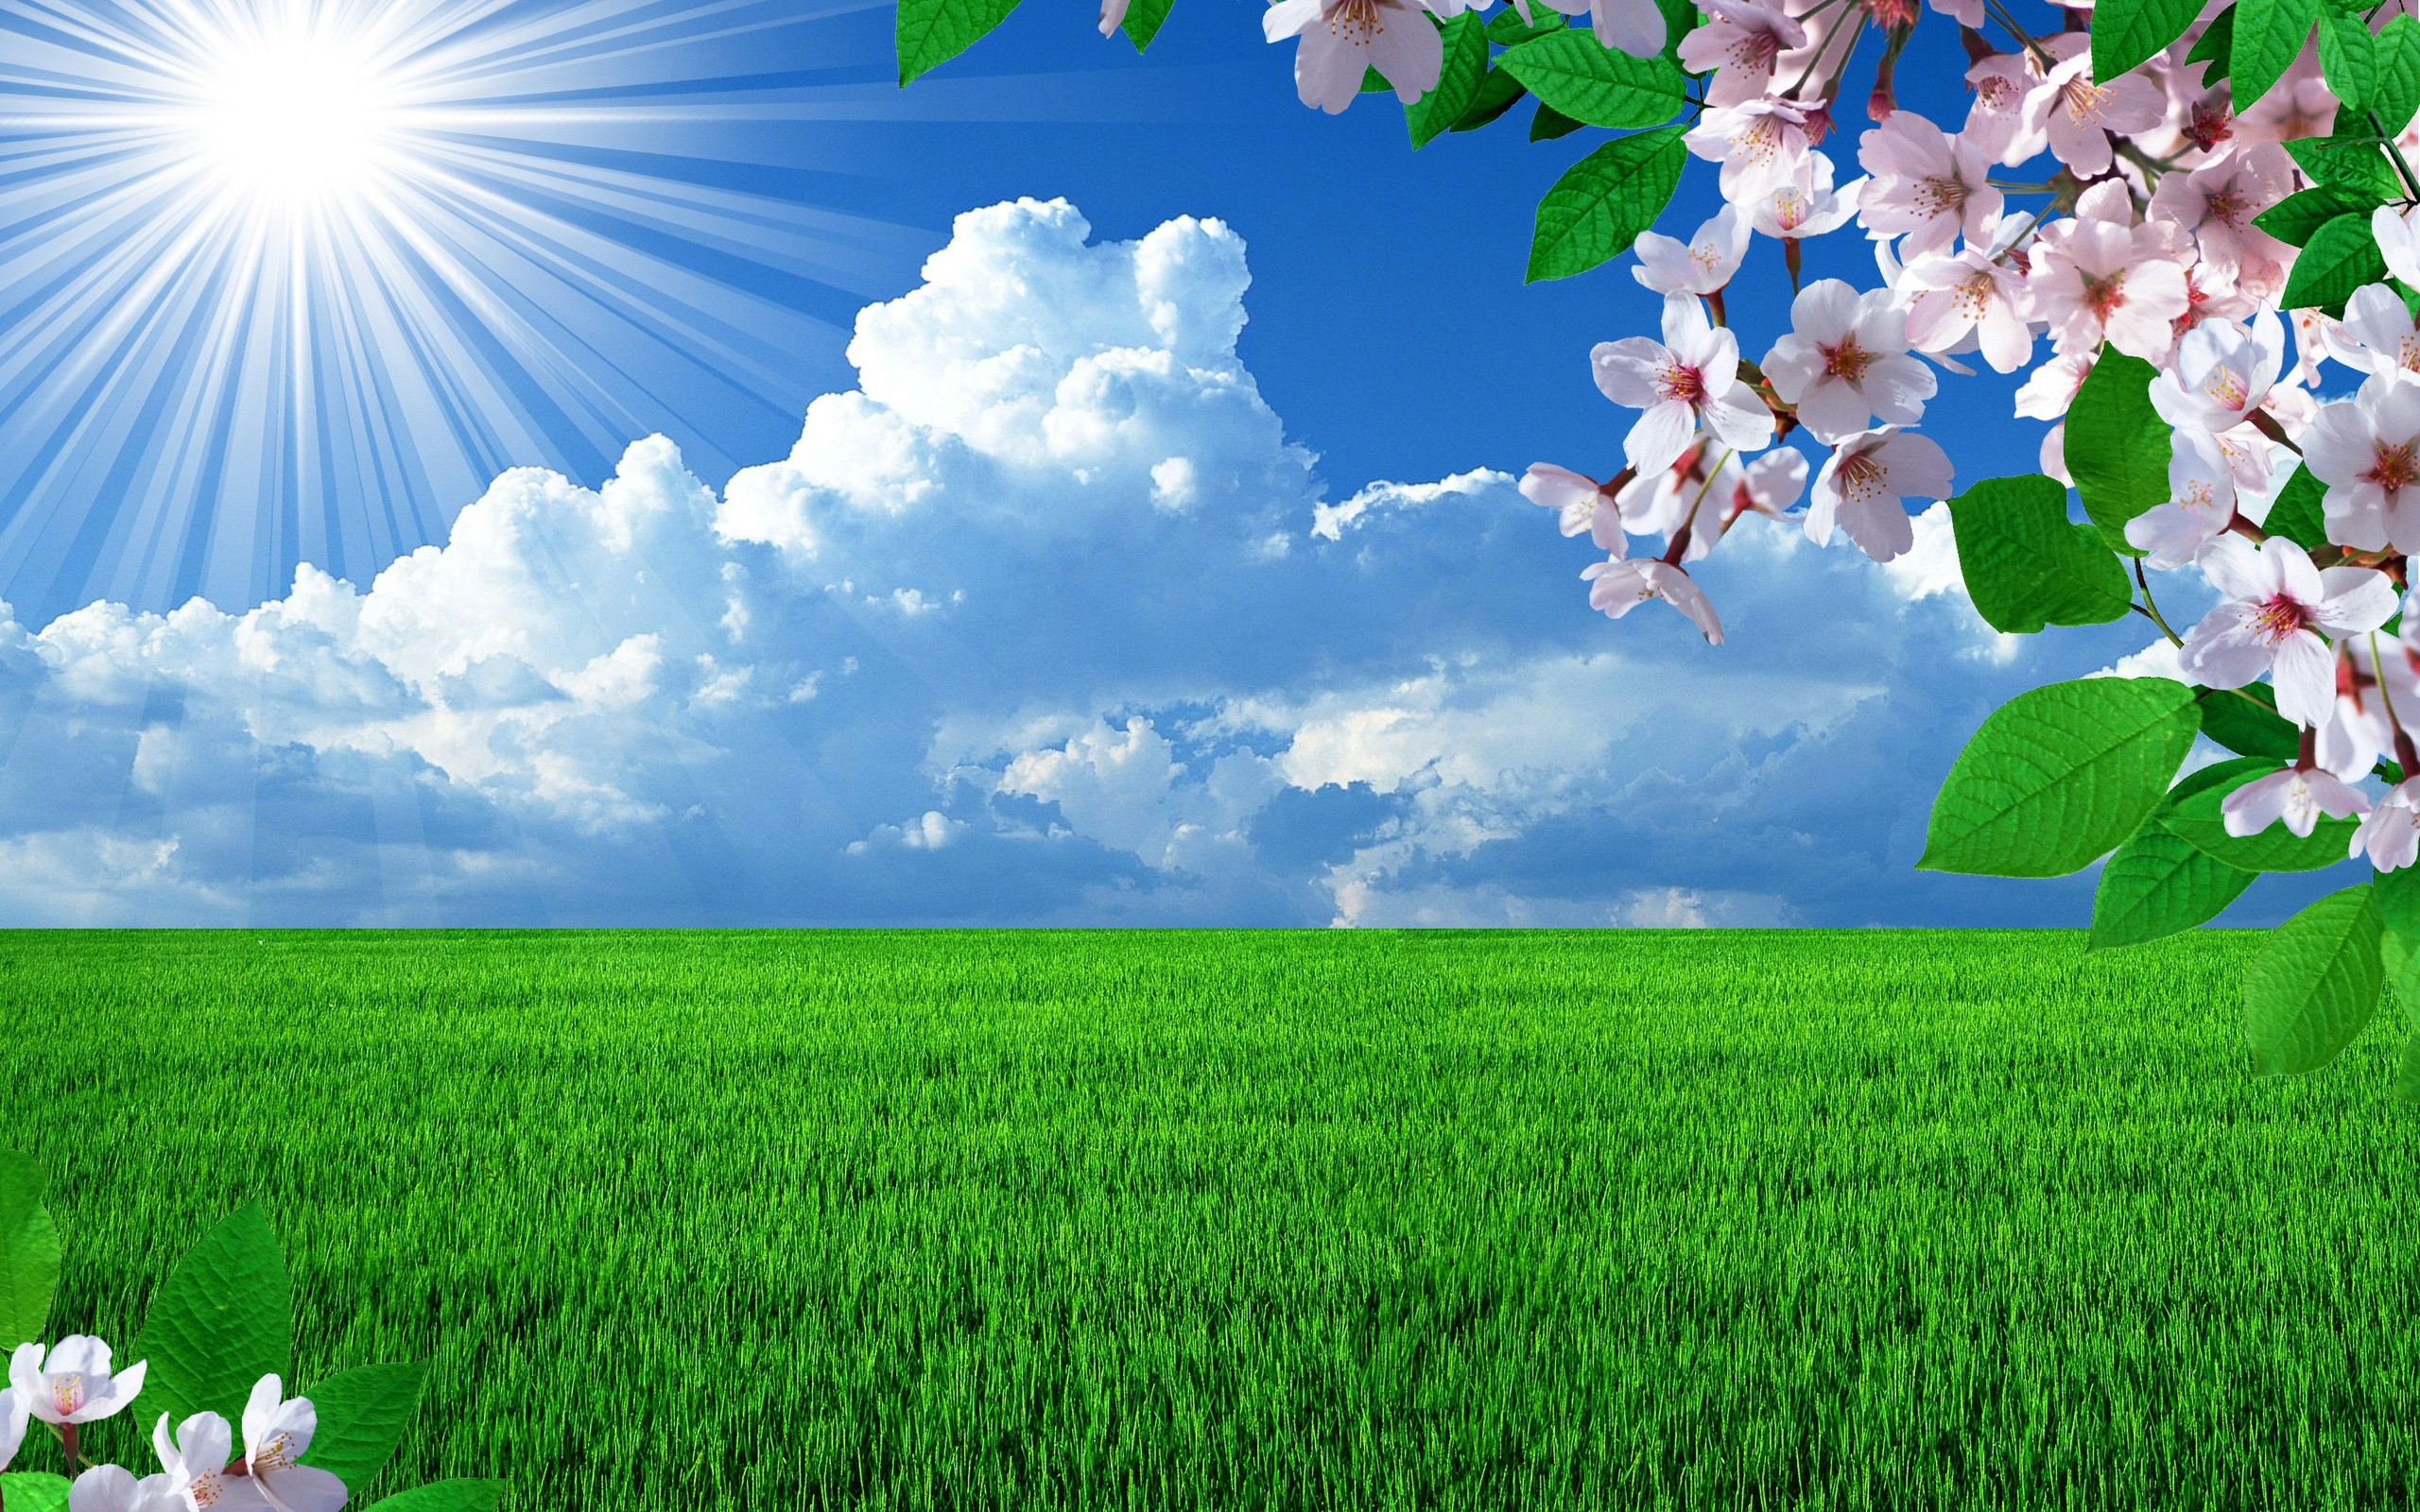 Beautiful Nature Spring Hd Background Wallpaper 17 HD Wallpapers